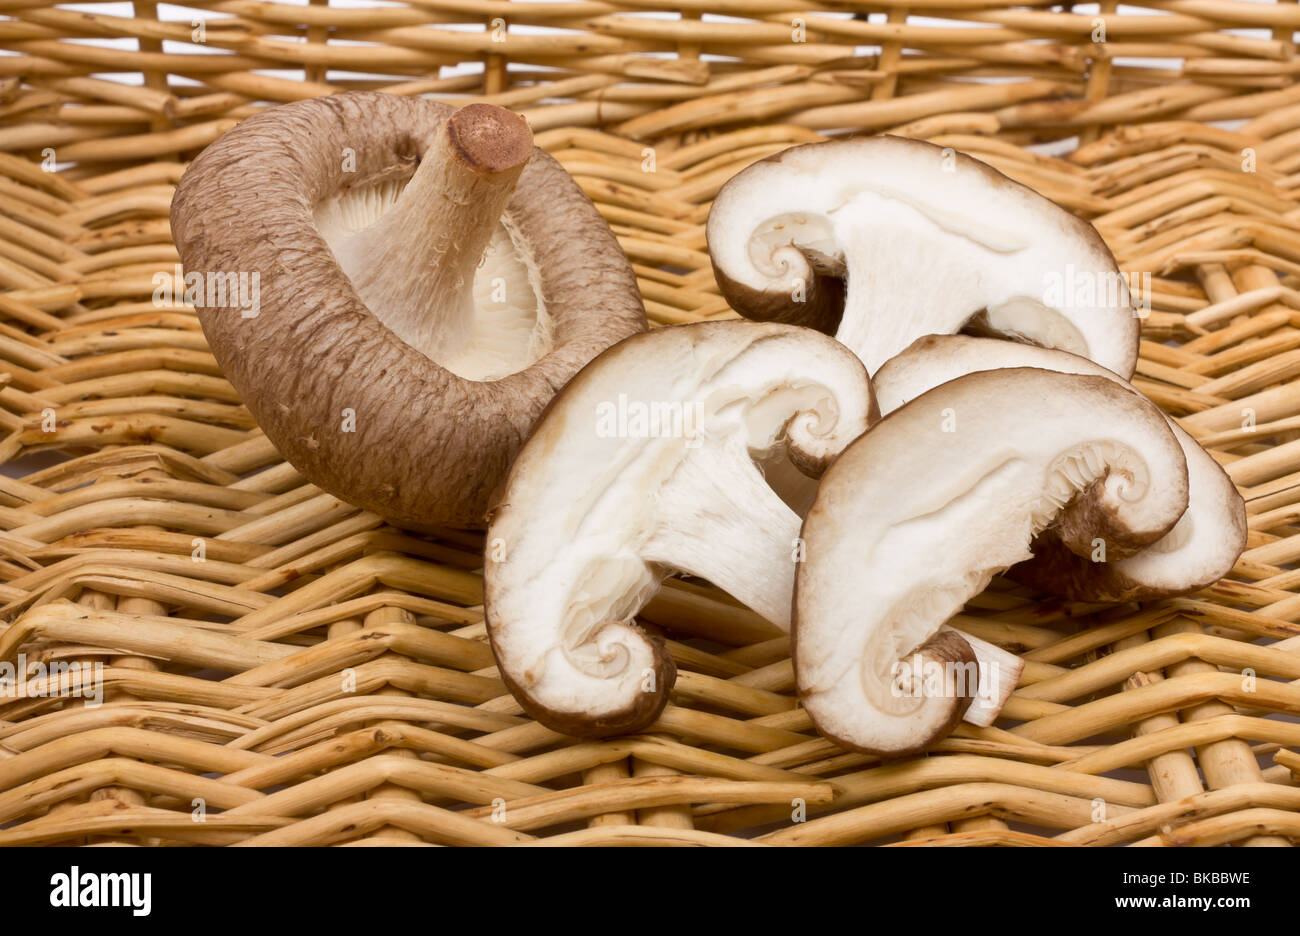 Whole and sliced raw Shiitake Mushrooms against wicker basket. - Stock Image